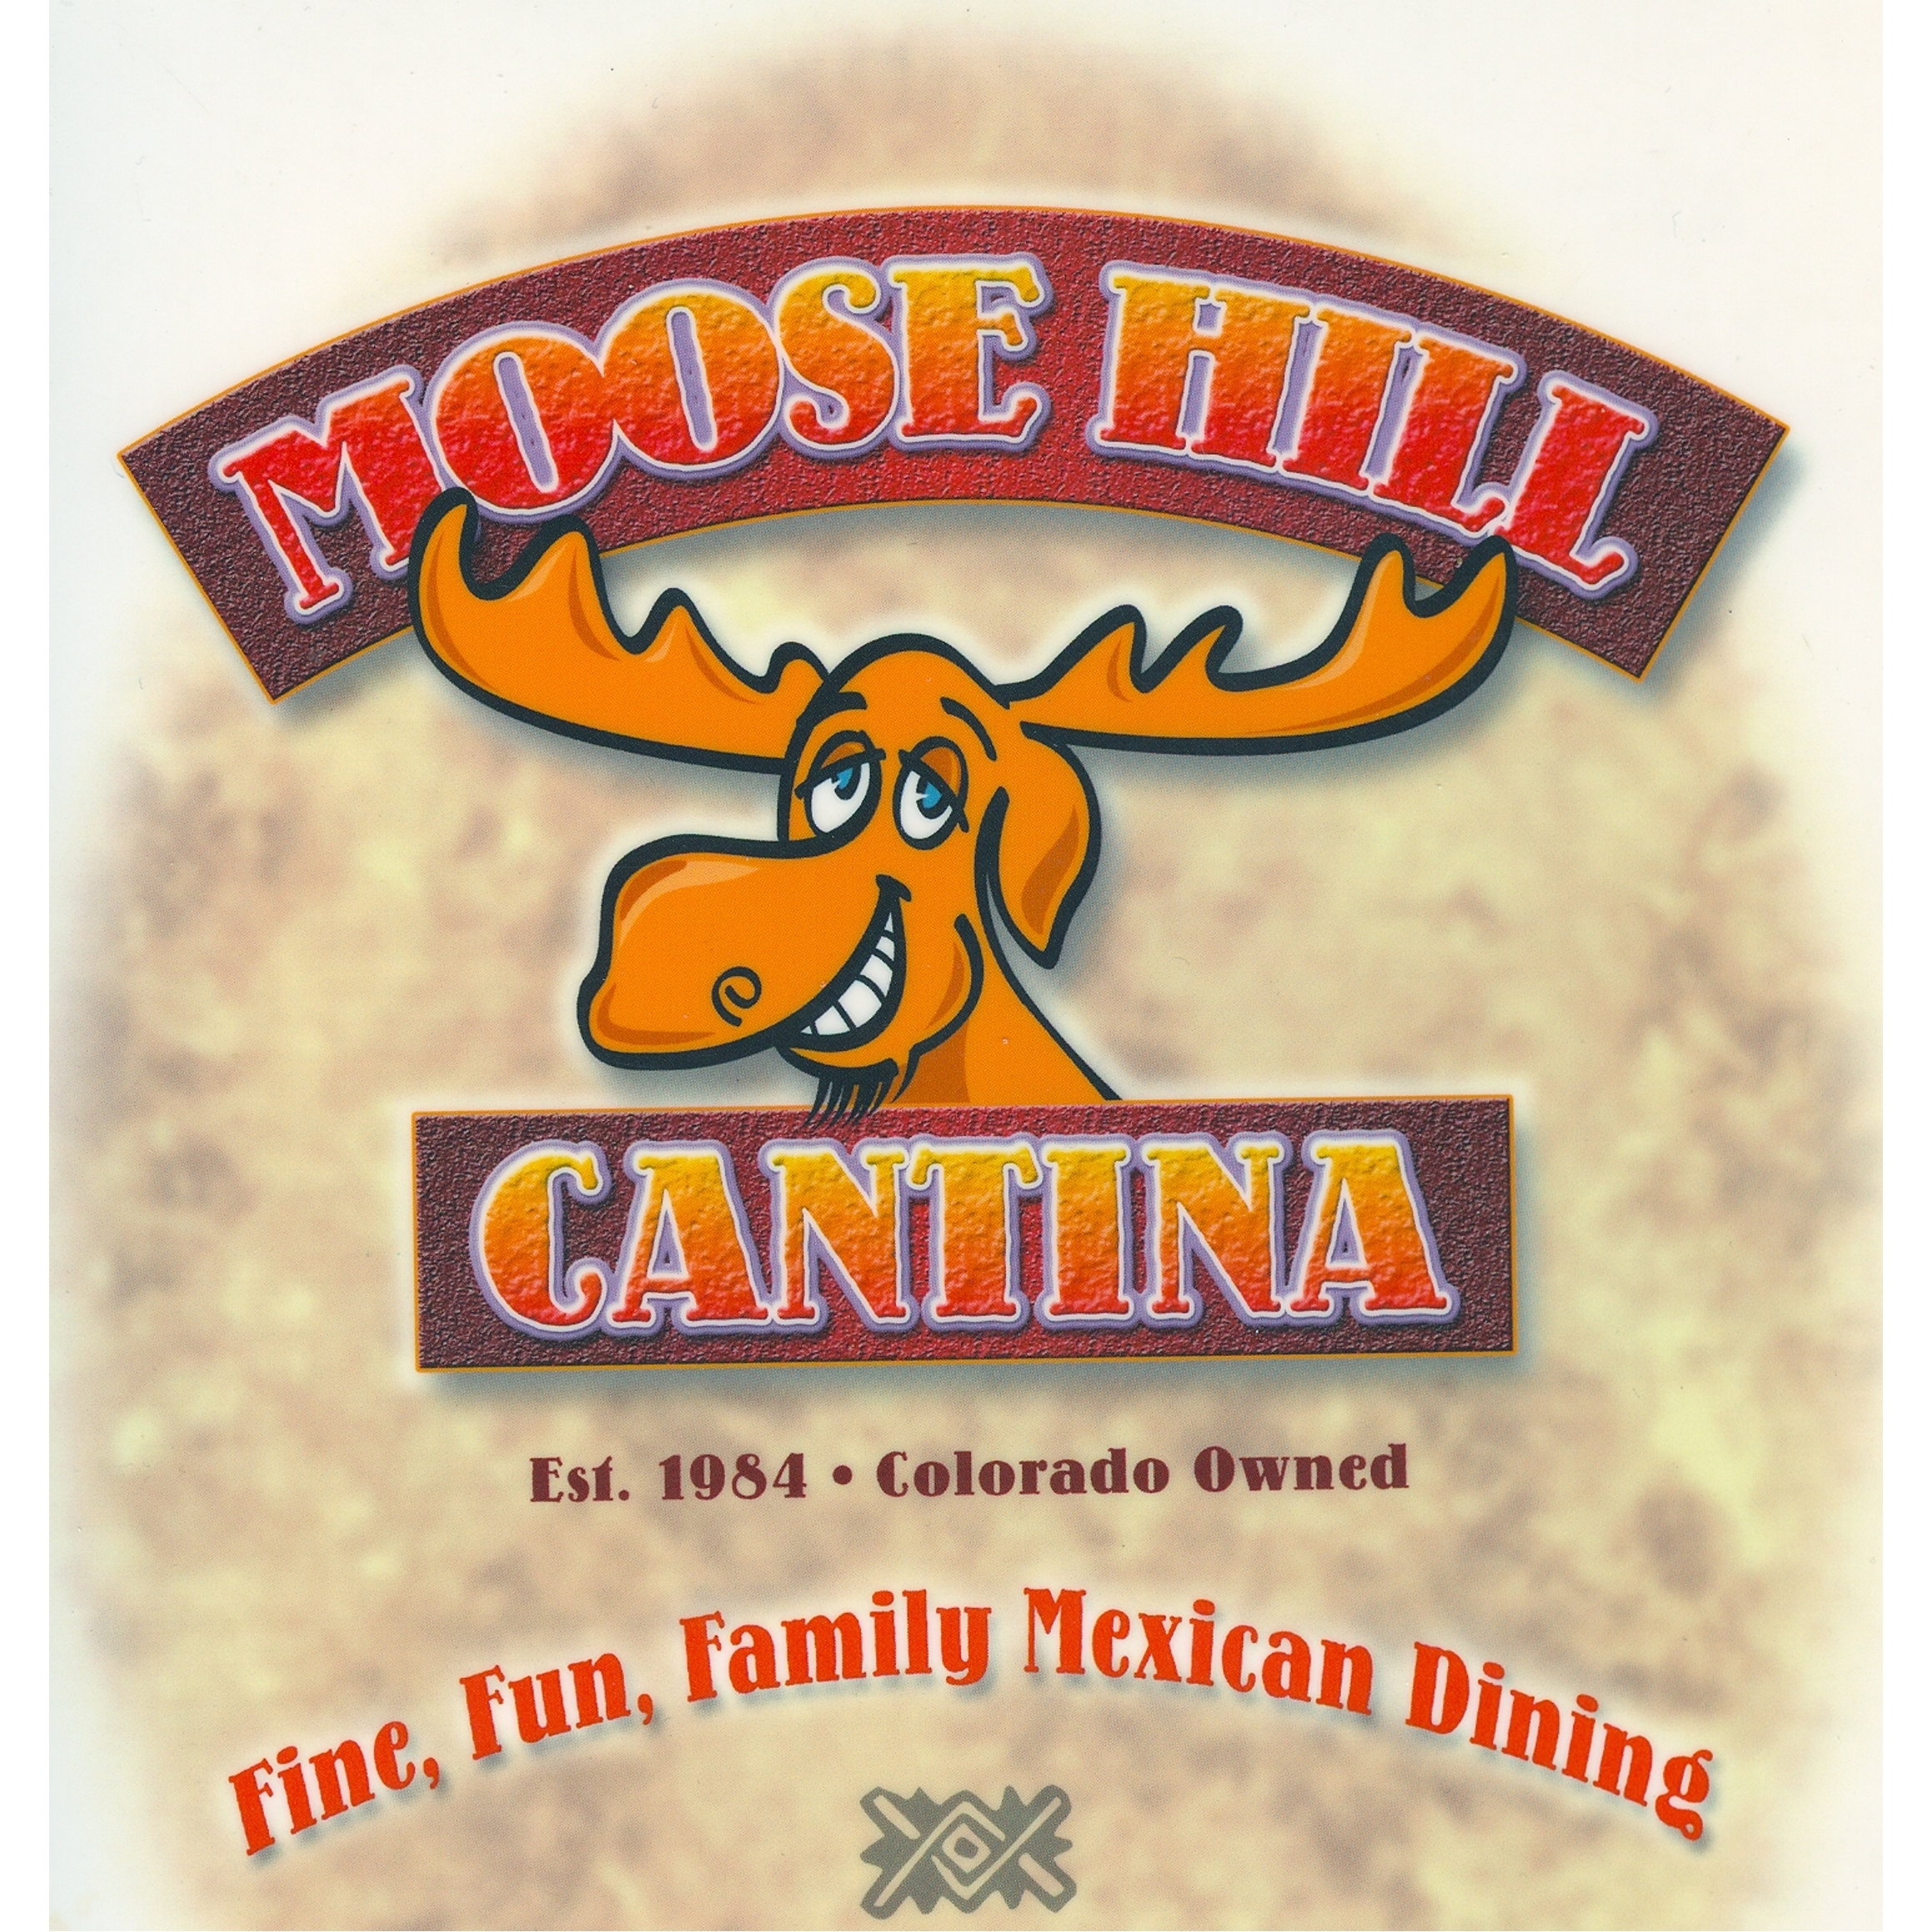 Moose Hill Cantina